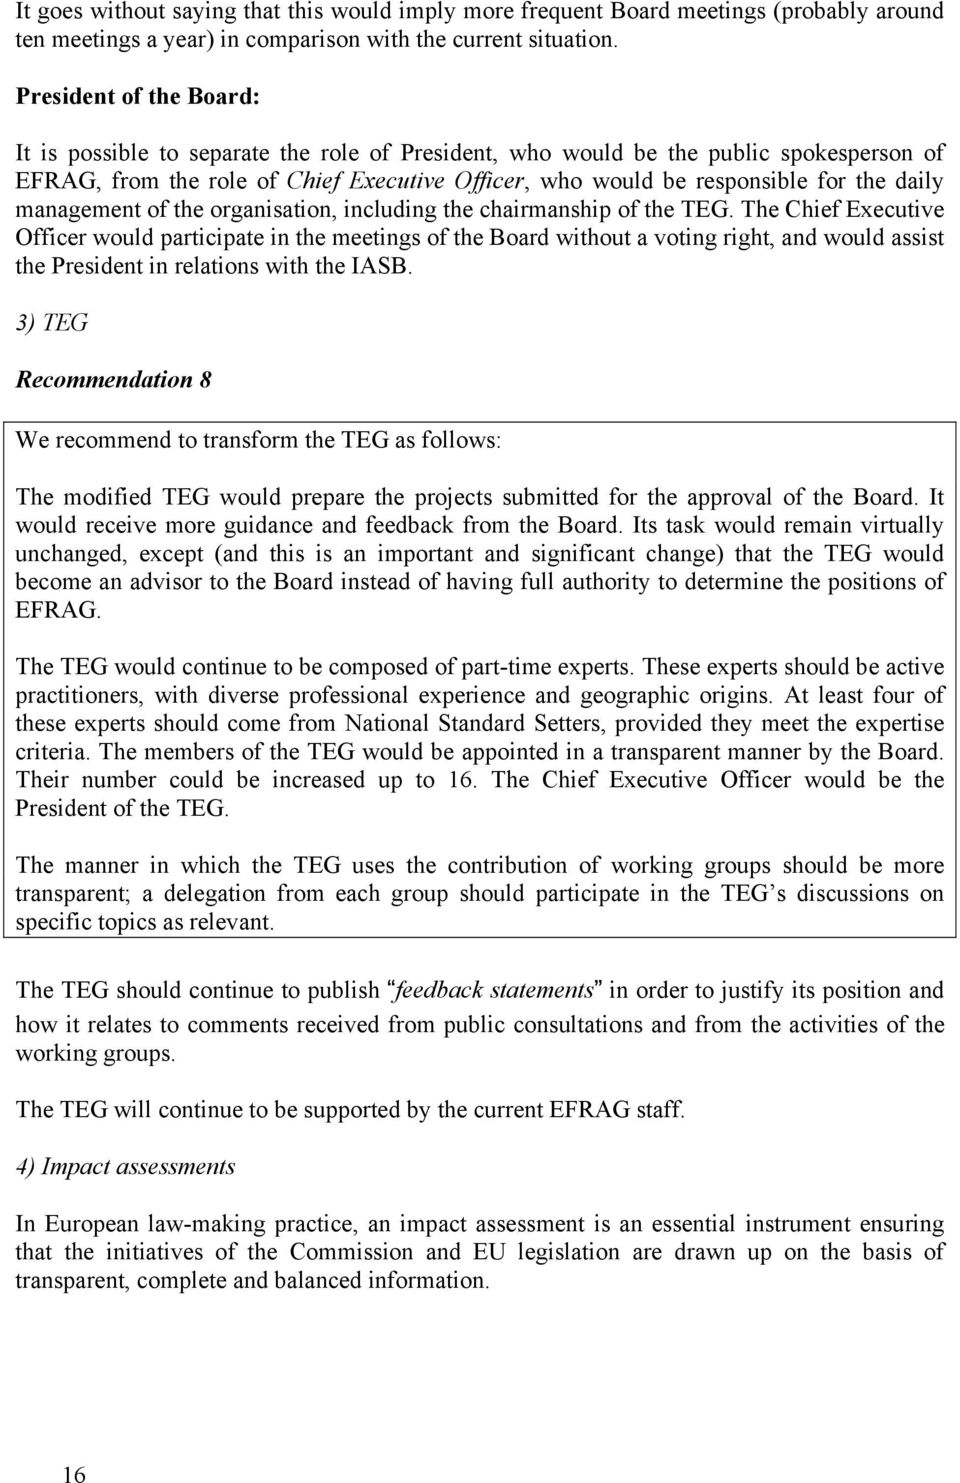 daily management of the organisation, including the chairmanship of the TEG.